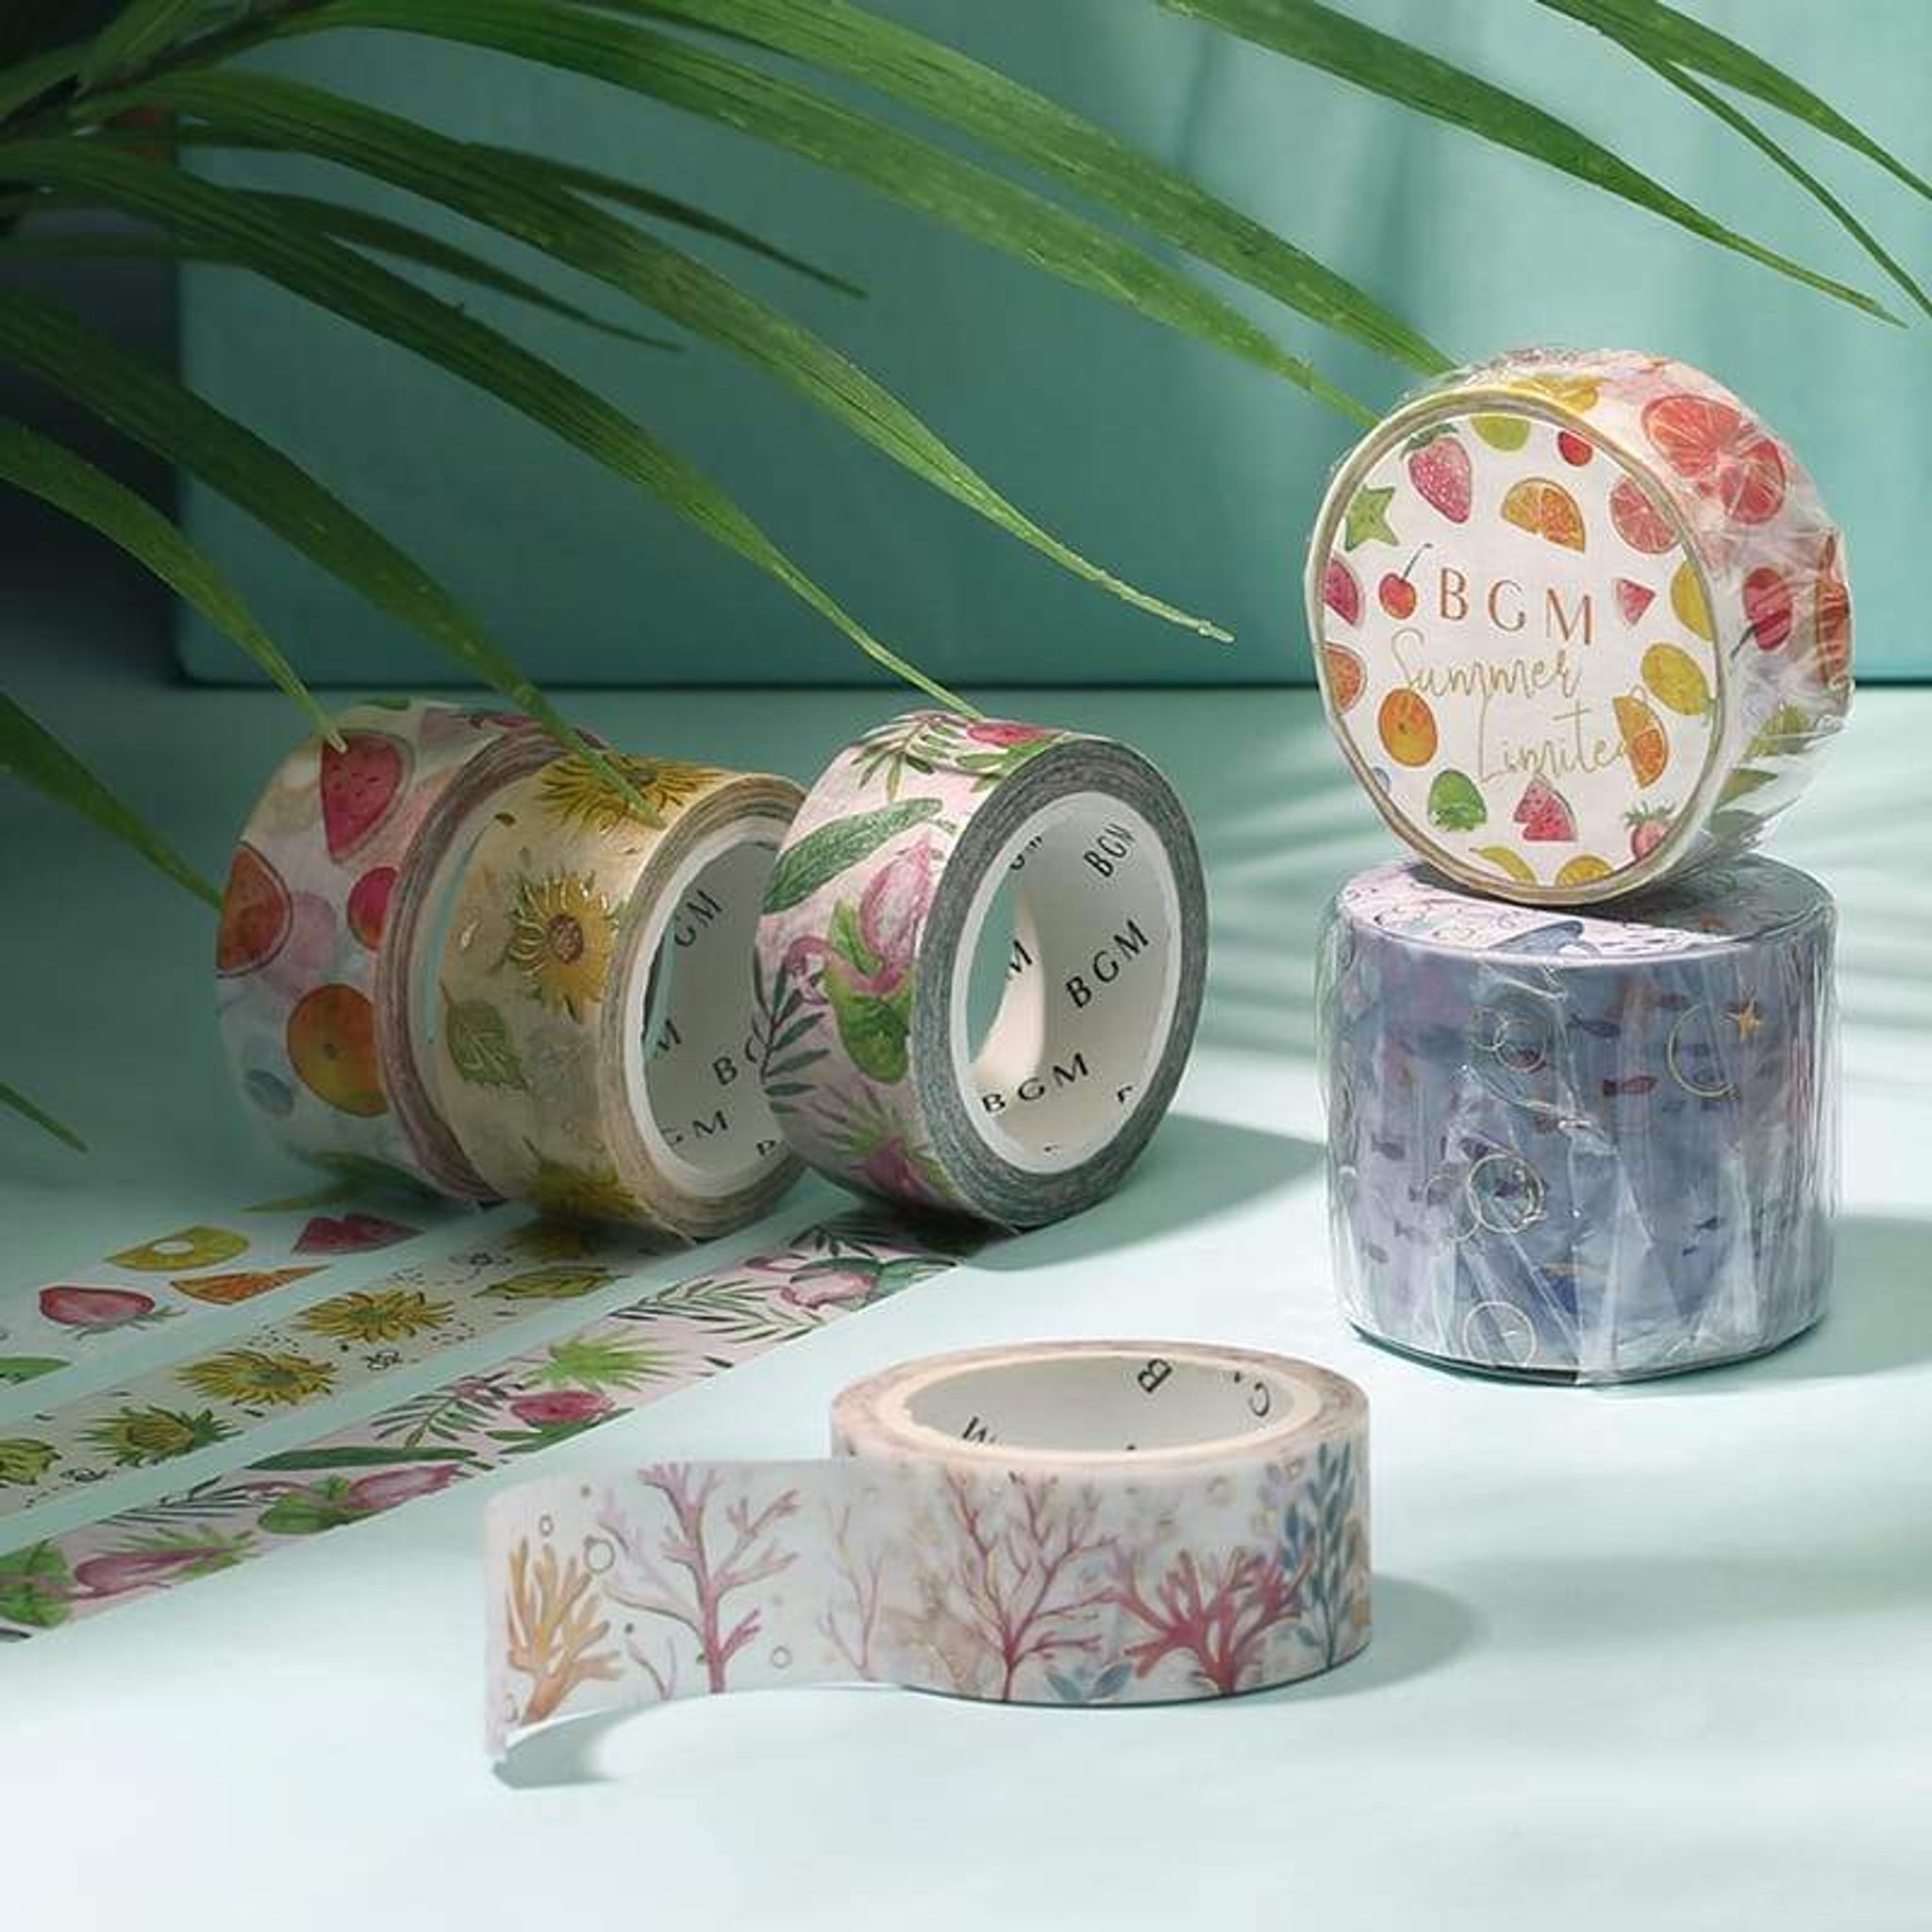 BGM Midsummer Night Washi Tape